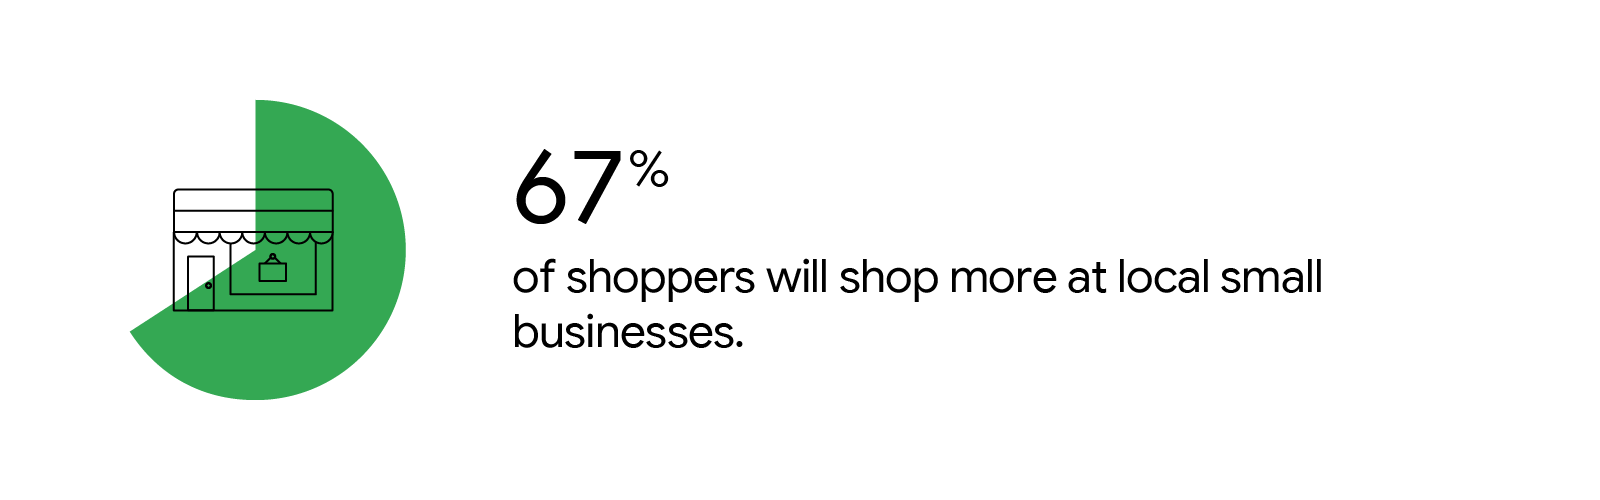 1859_inline_How-COVID-will-affect-holiday-shopping_01.png